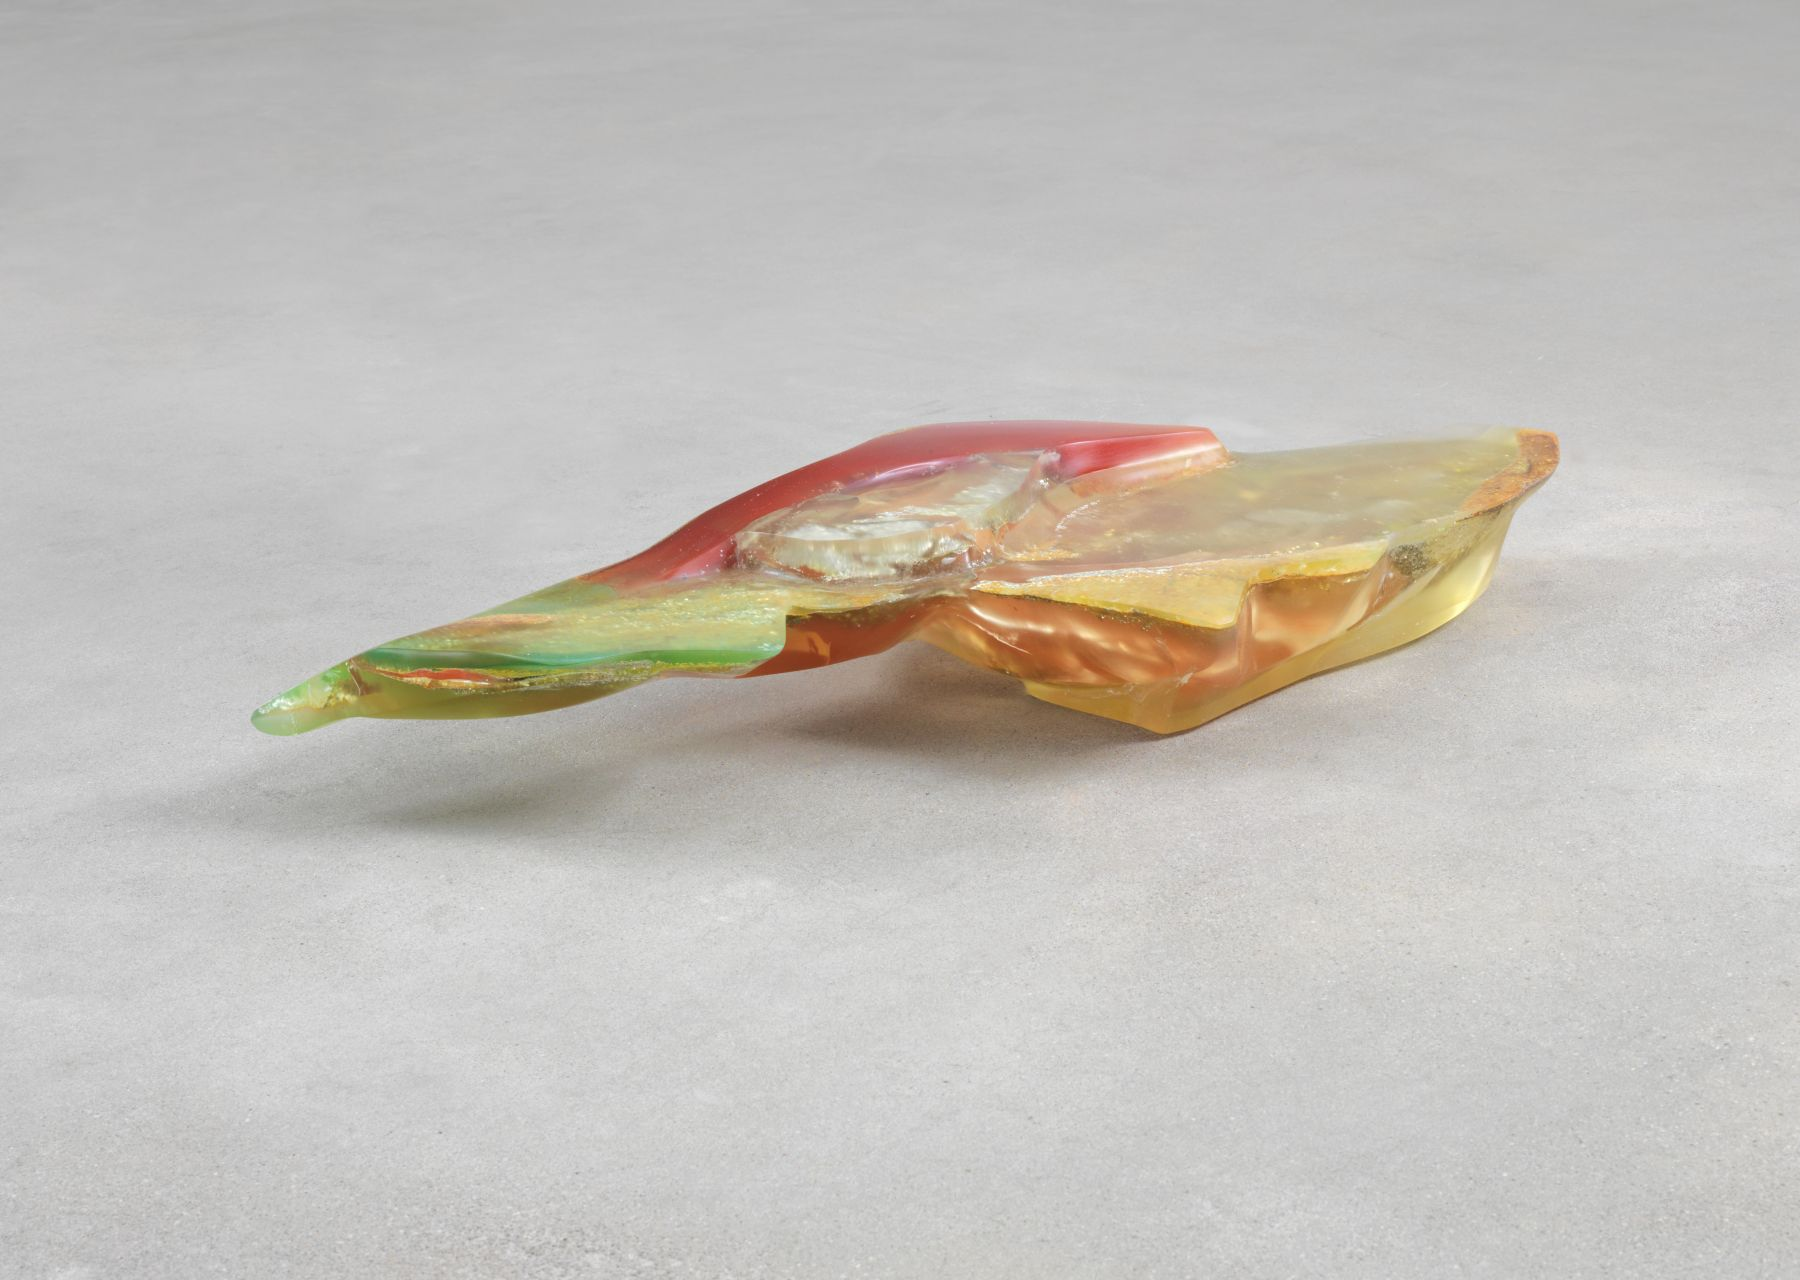 Bennington IV, 1970, Polyester resin, milled glass, plaster, glitter, and dry pigment